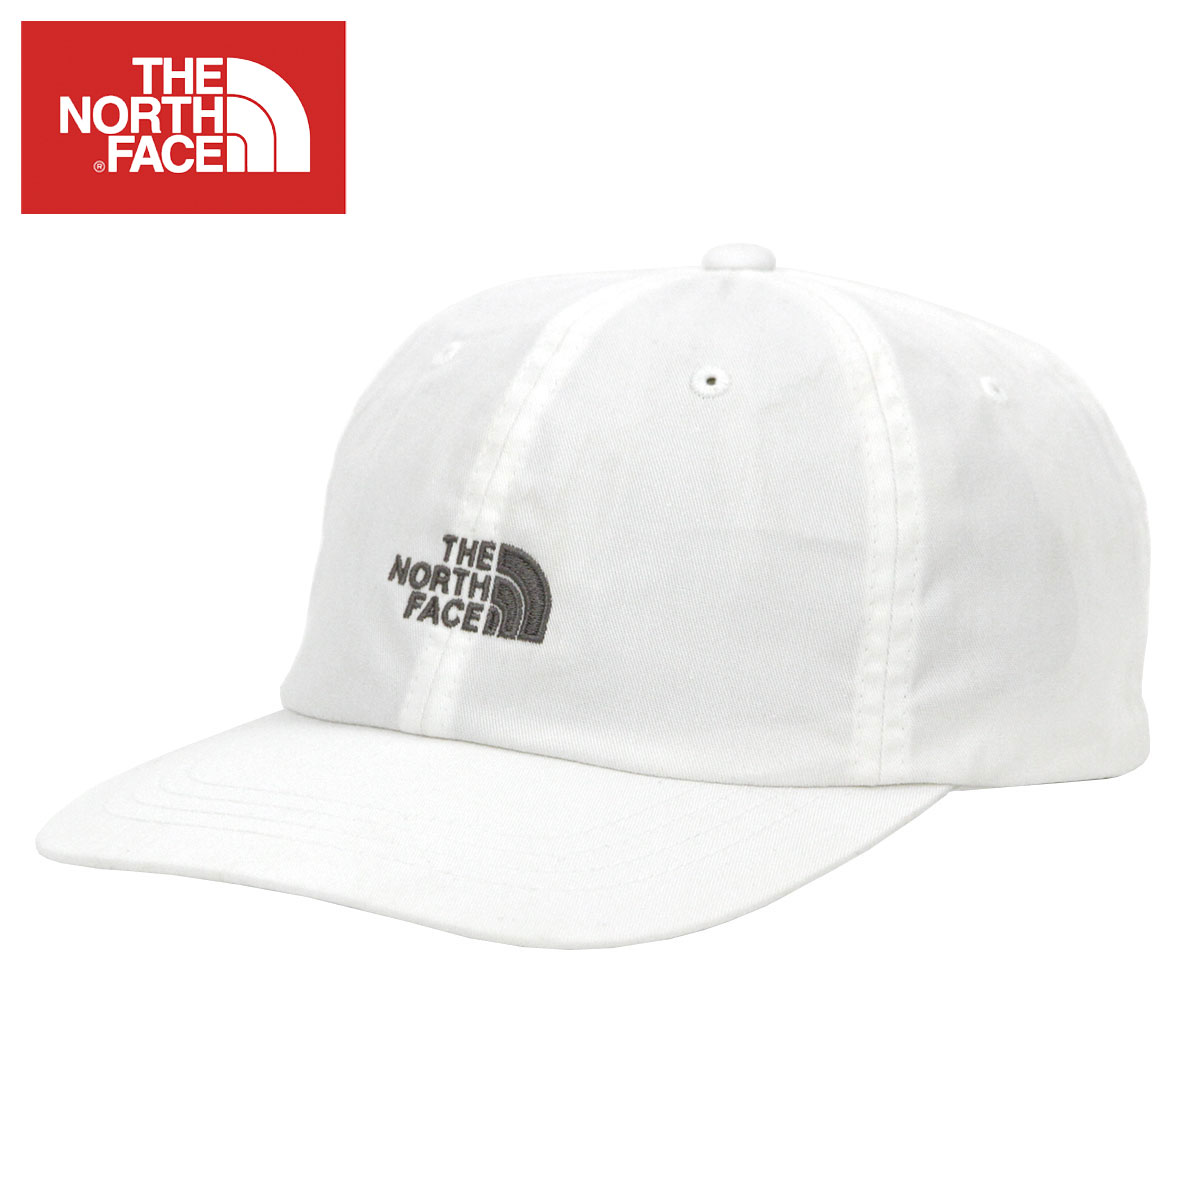 1db743a6c North Face THE NORTH FACE regular article men gap Dis cap hat THE NORTH THE  FACE NORM HAT TNF WHITE